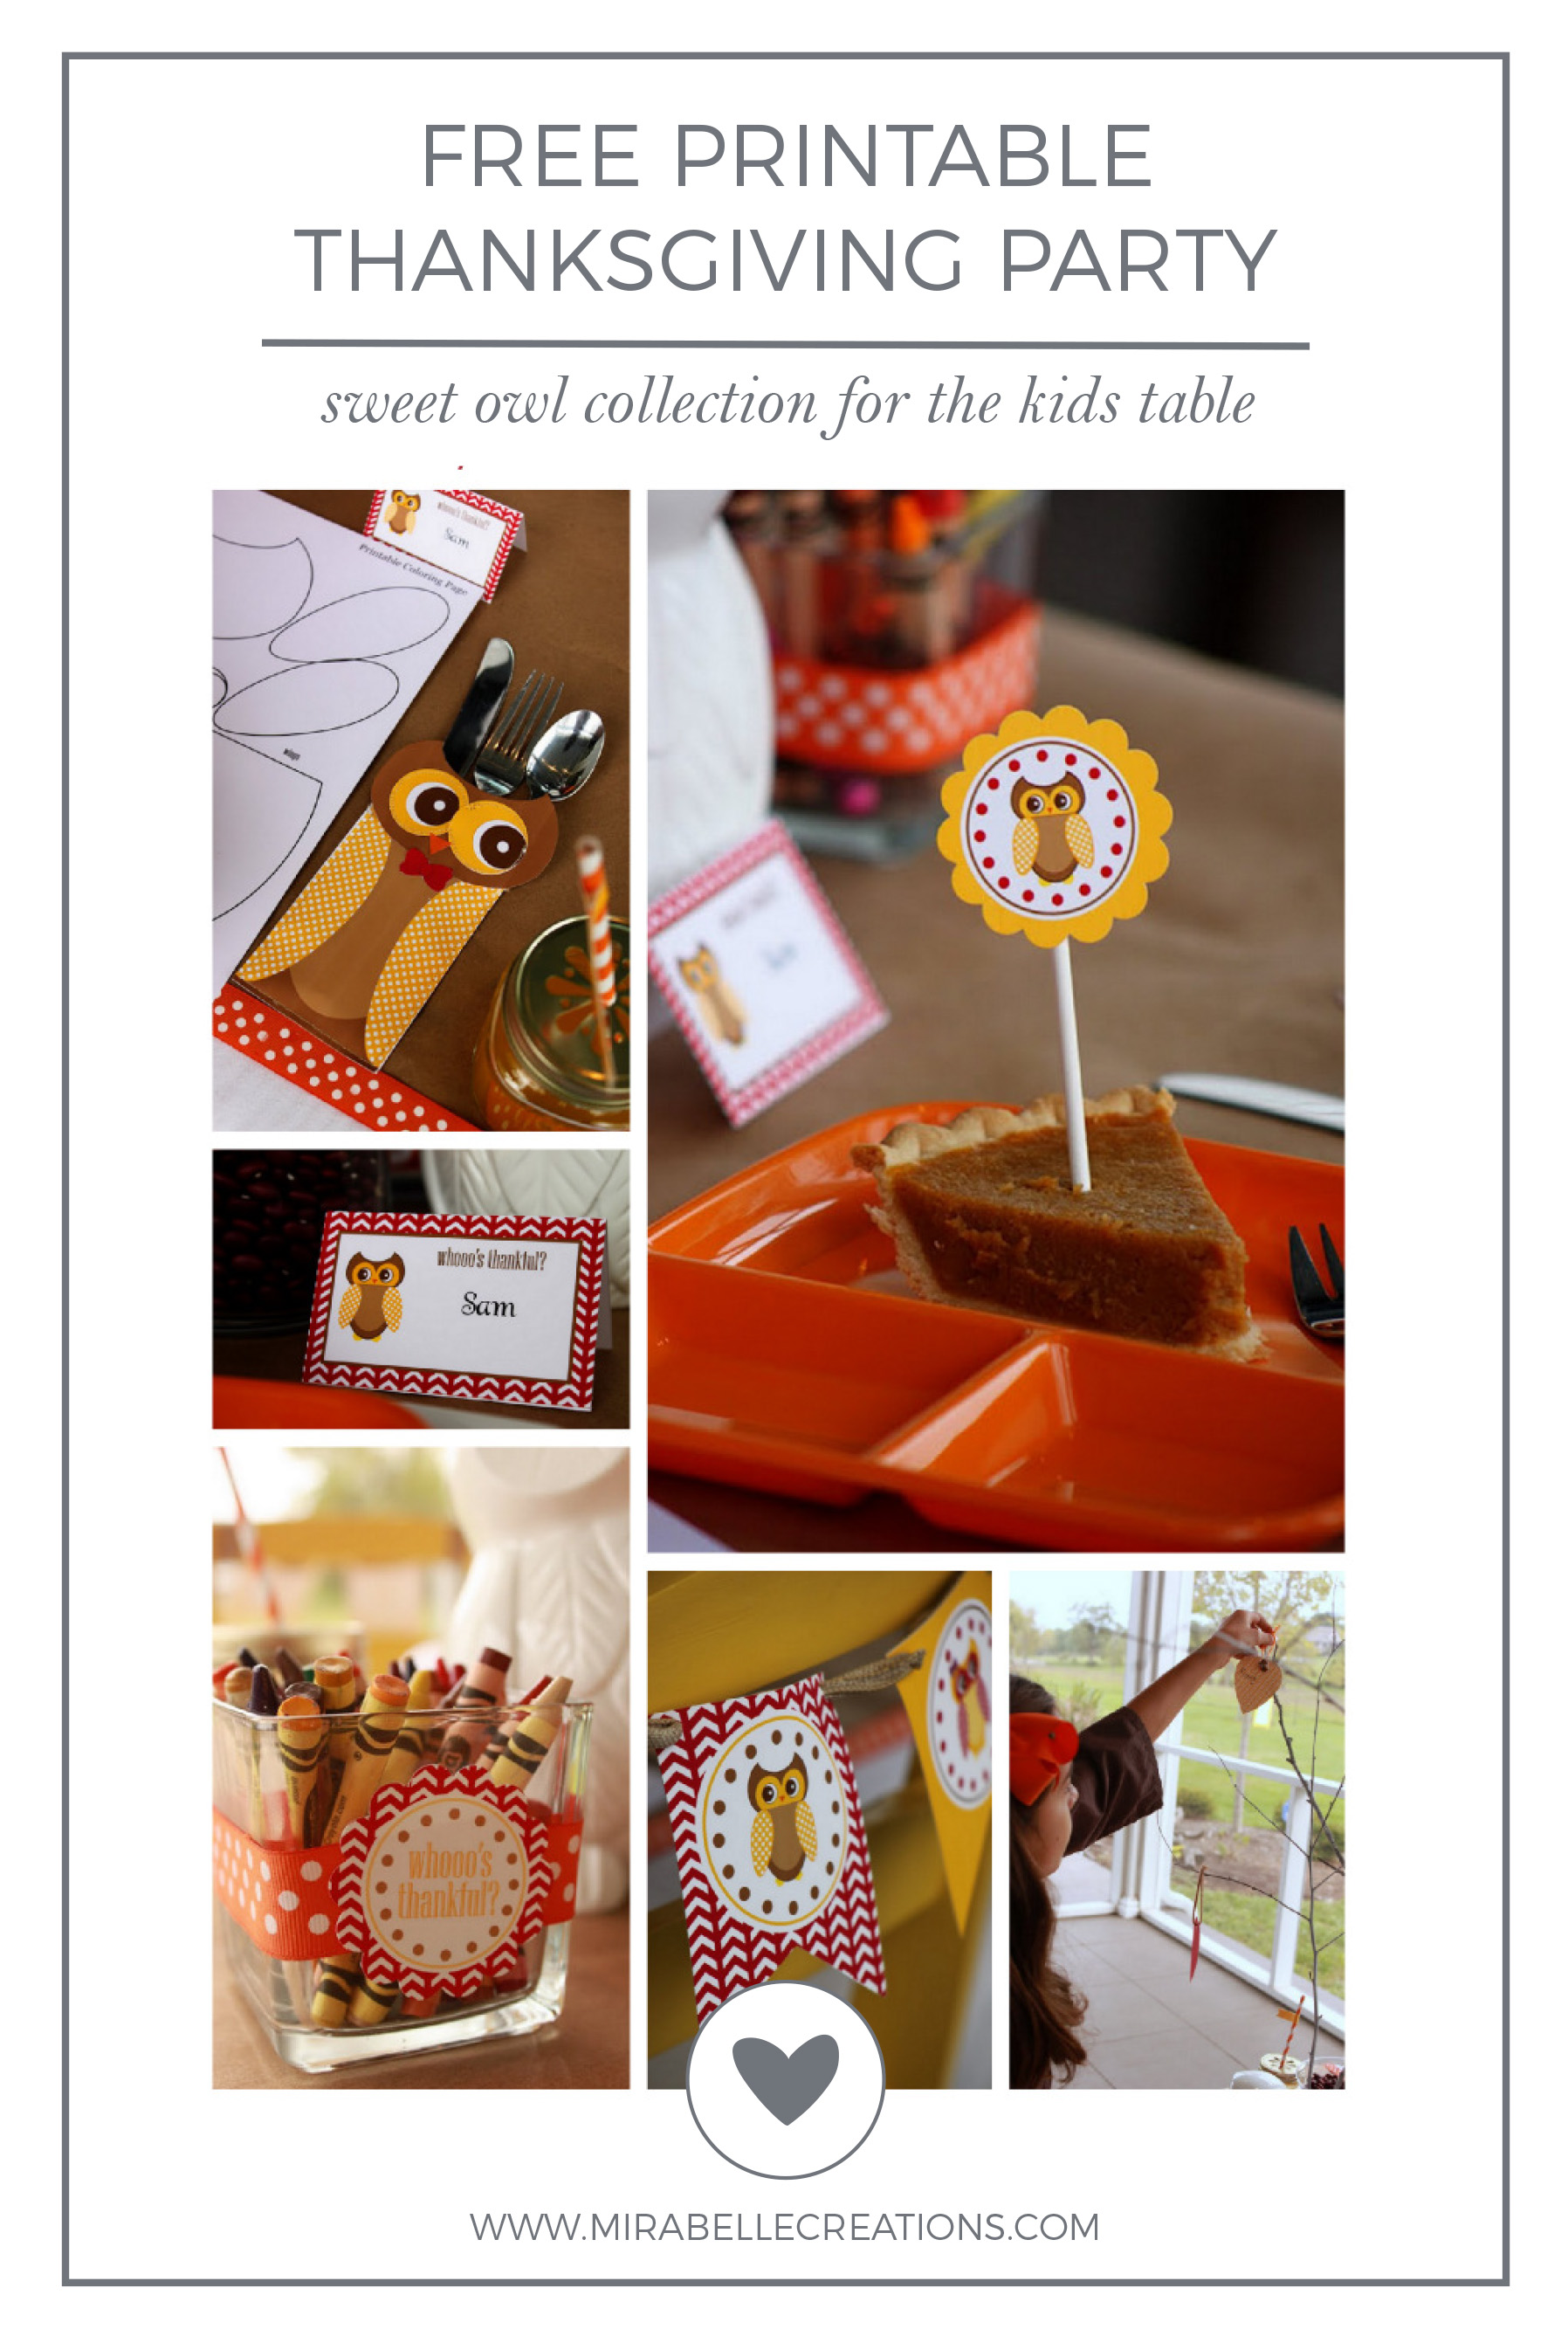 Whooooooo's Thankful? Kids Thanksgiving Party Free Printables